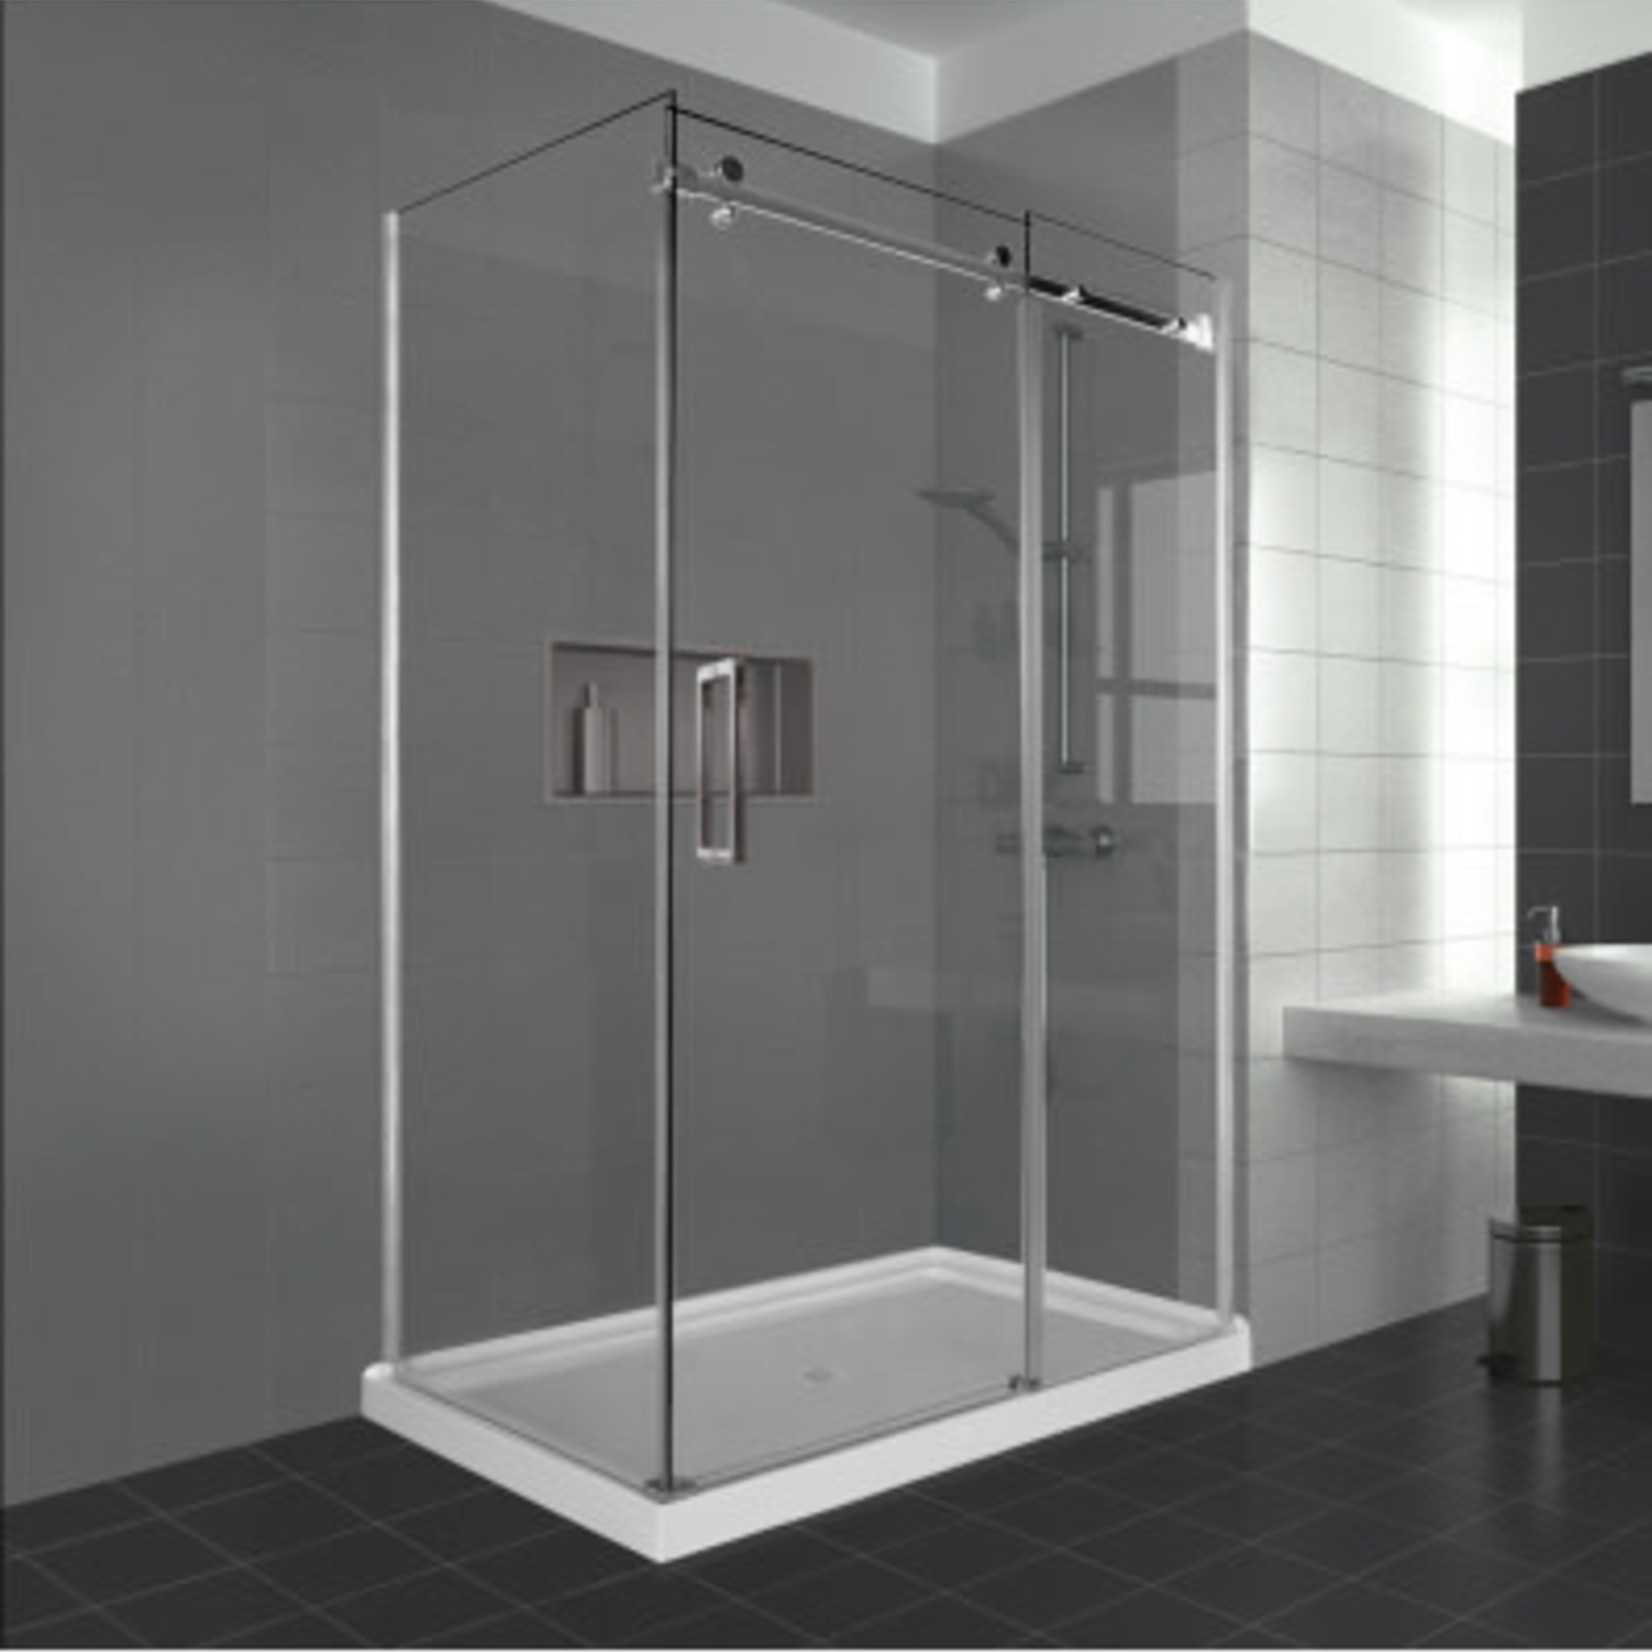 Reversible shower set 32x60 chrome Caruso Nautika series